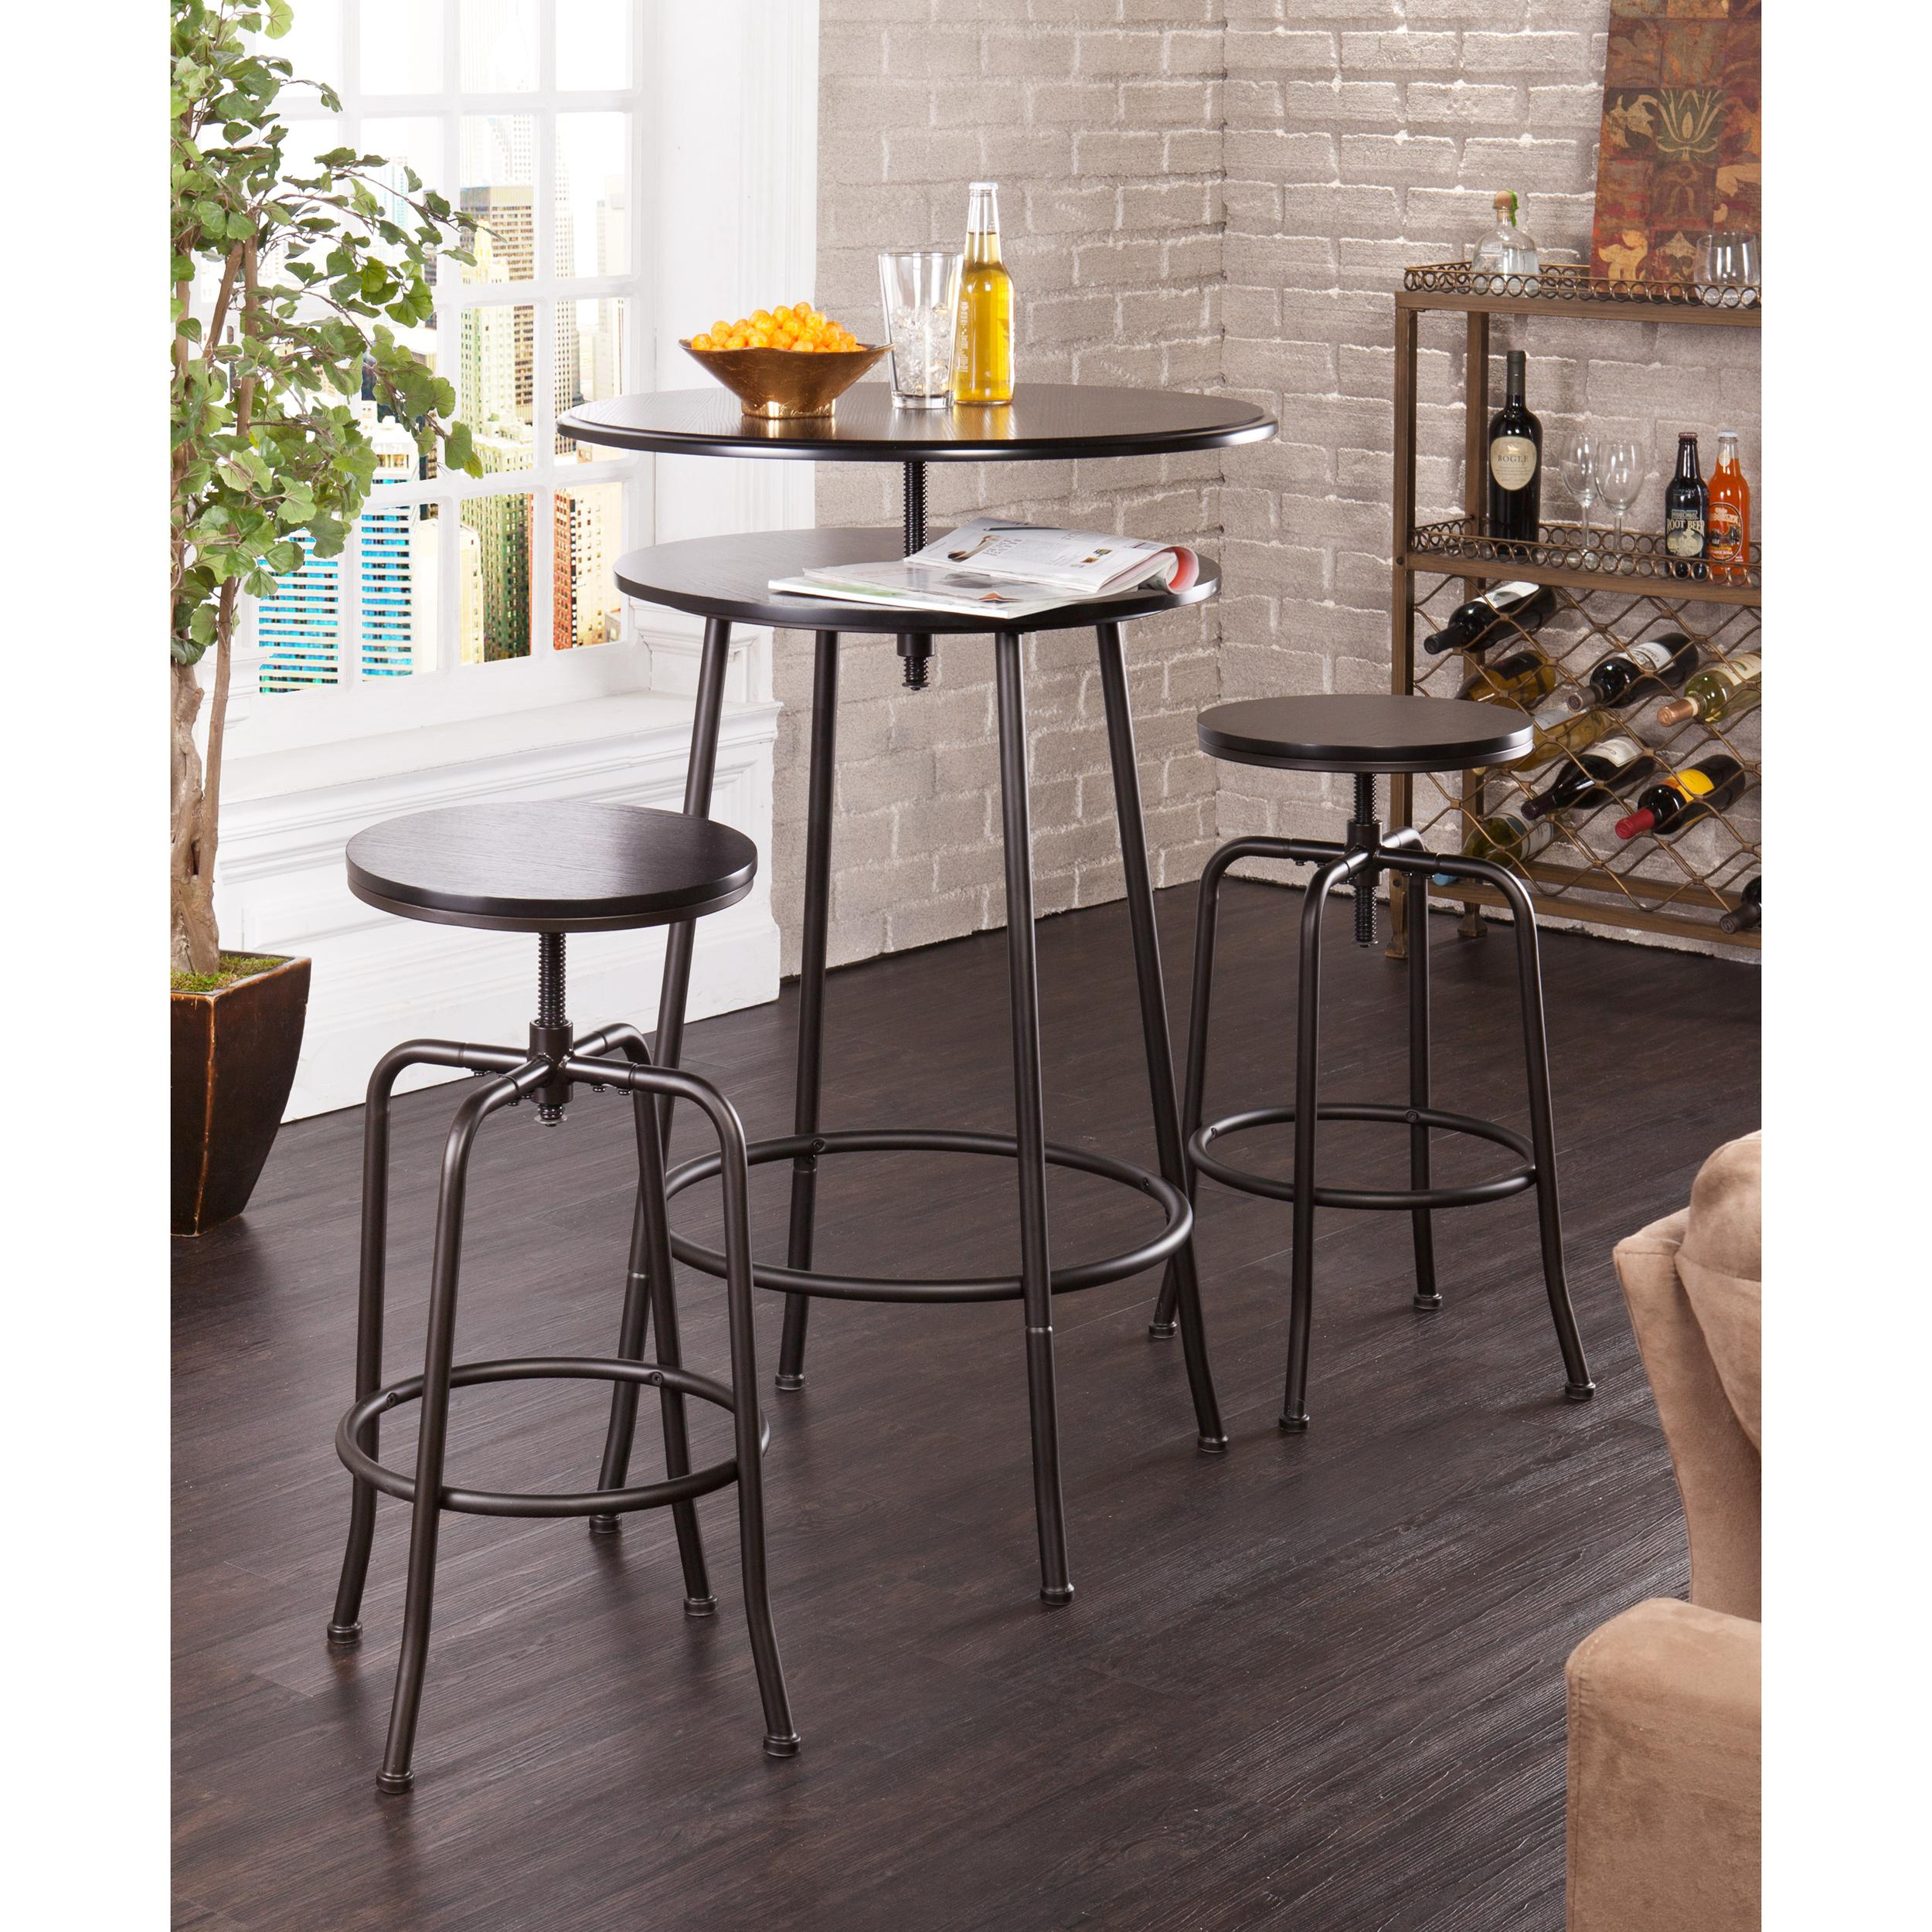 Bar Stools And Tables: Amazon.com: Holly & Martin Kalomar 3pc Adjustable Pub